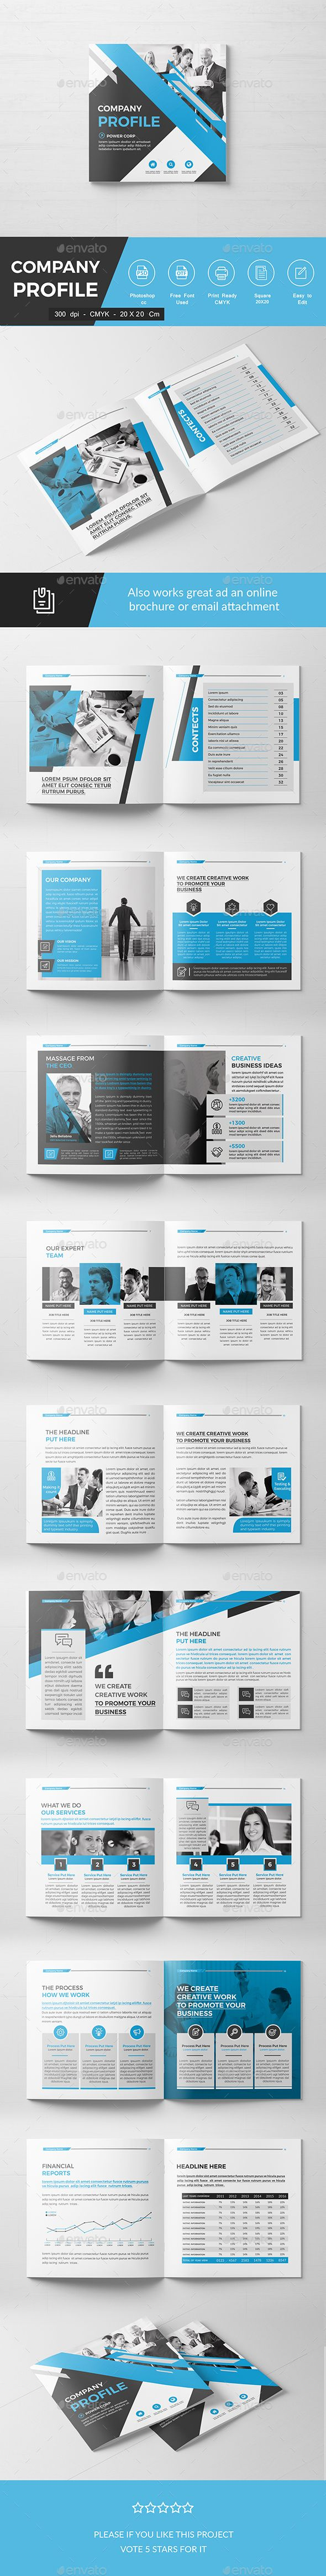 Square Company Brochure - Corporate #Brochures Download here: https://graphicriver.net/item/square-company-brochure/19596253?ref=alena994